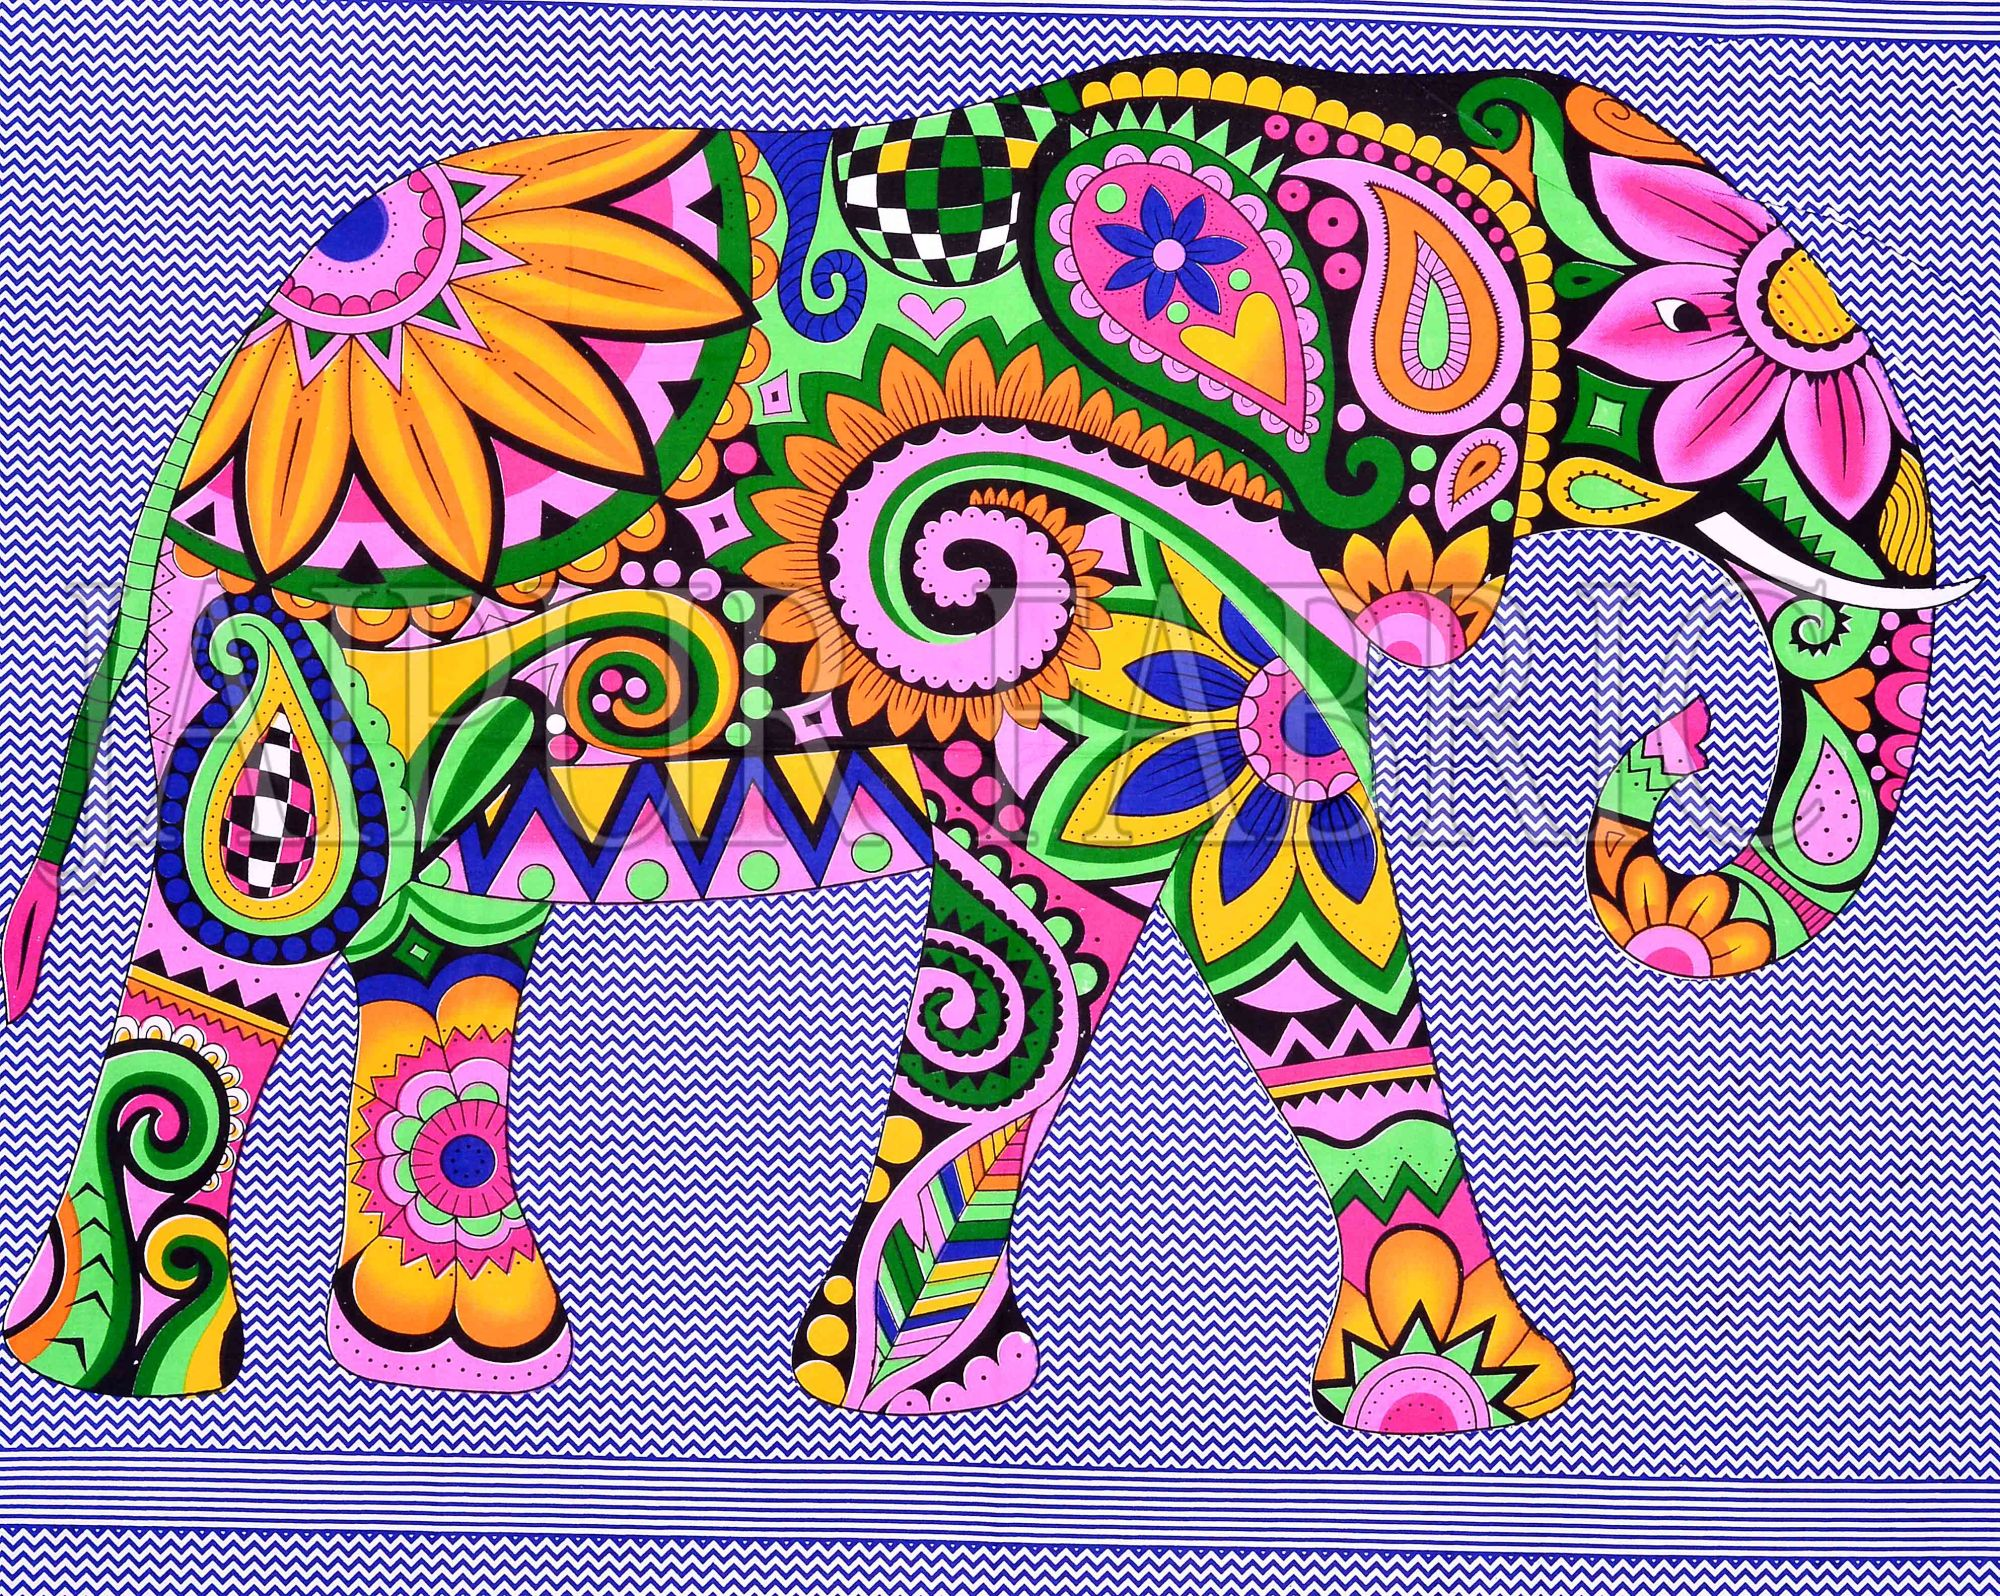 Navy Blue Border With Multi-Colored Elephant Pigment Print Cotton Double Bedsheet